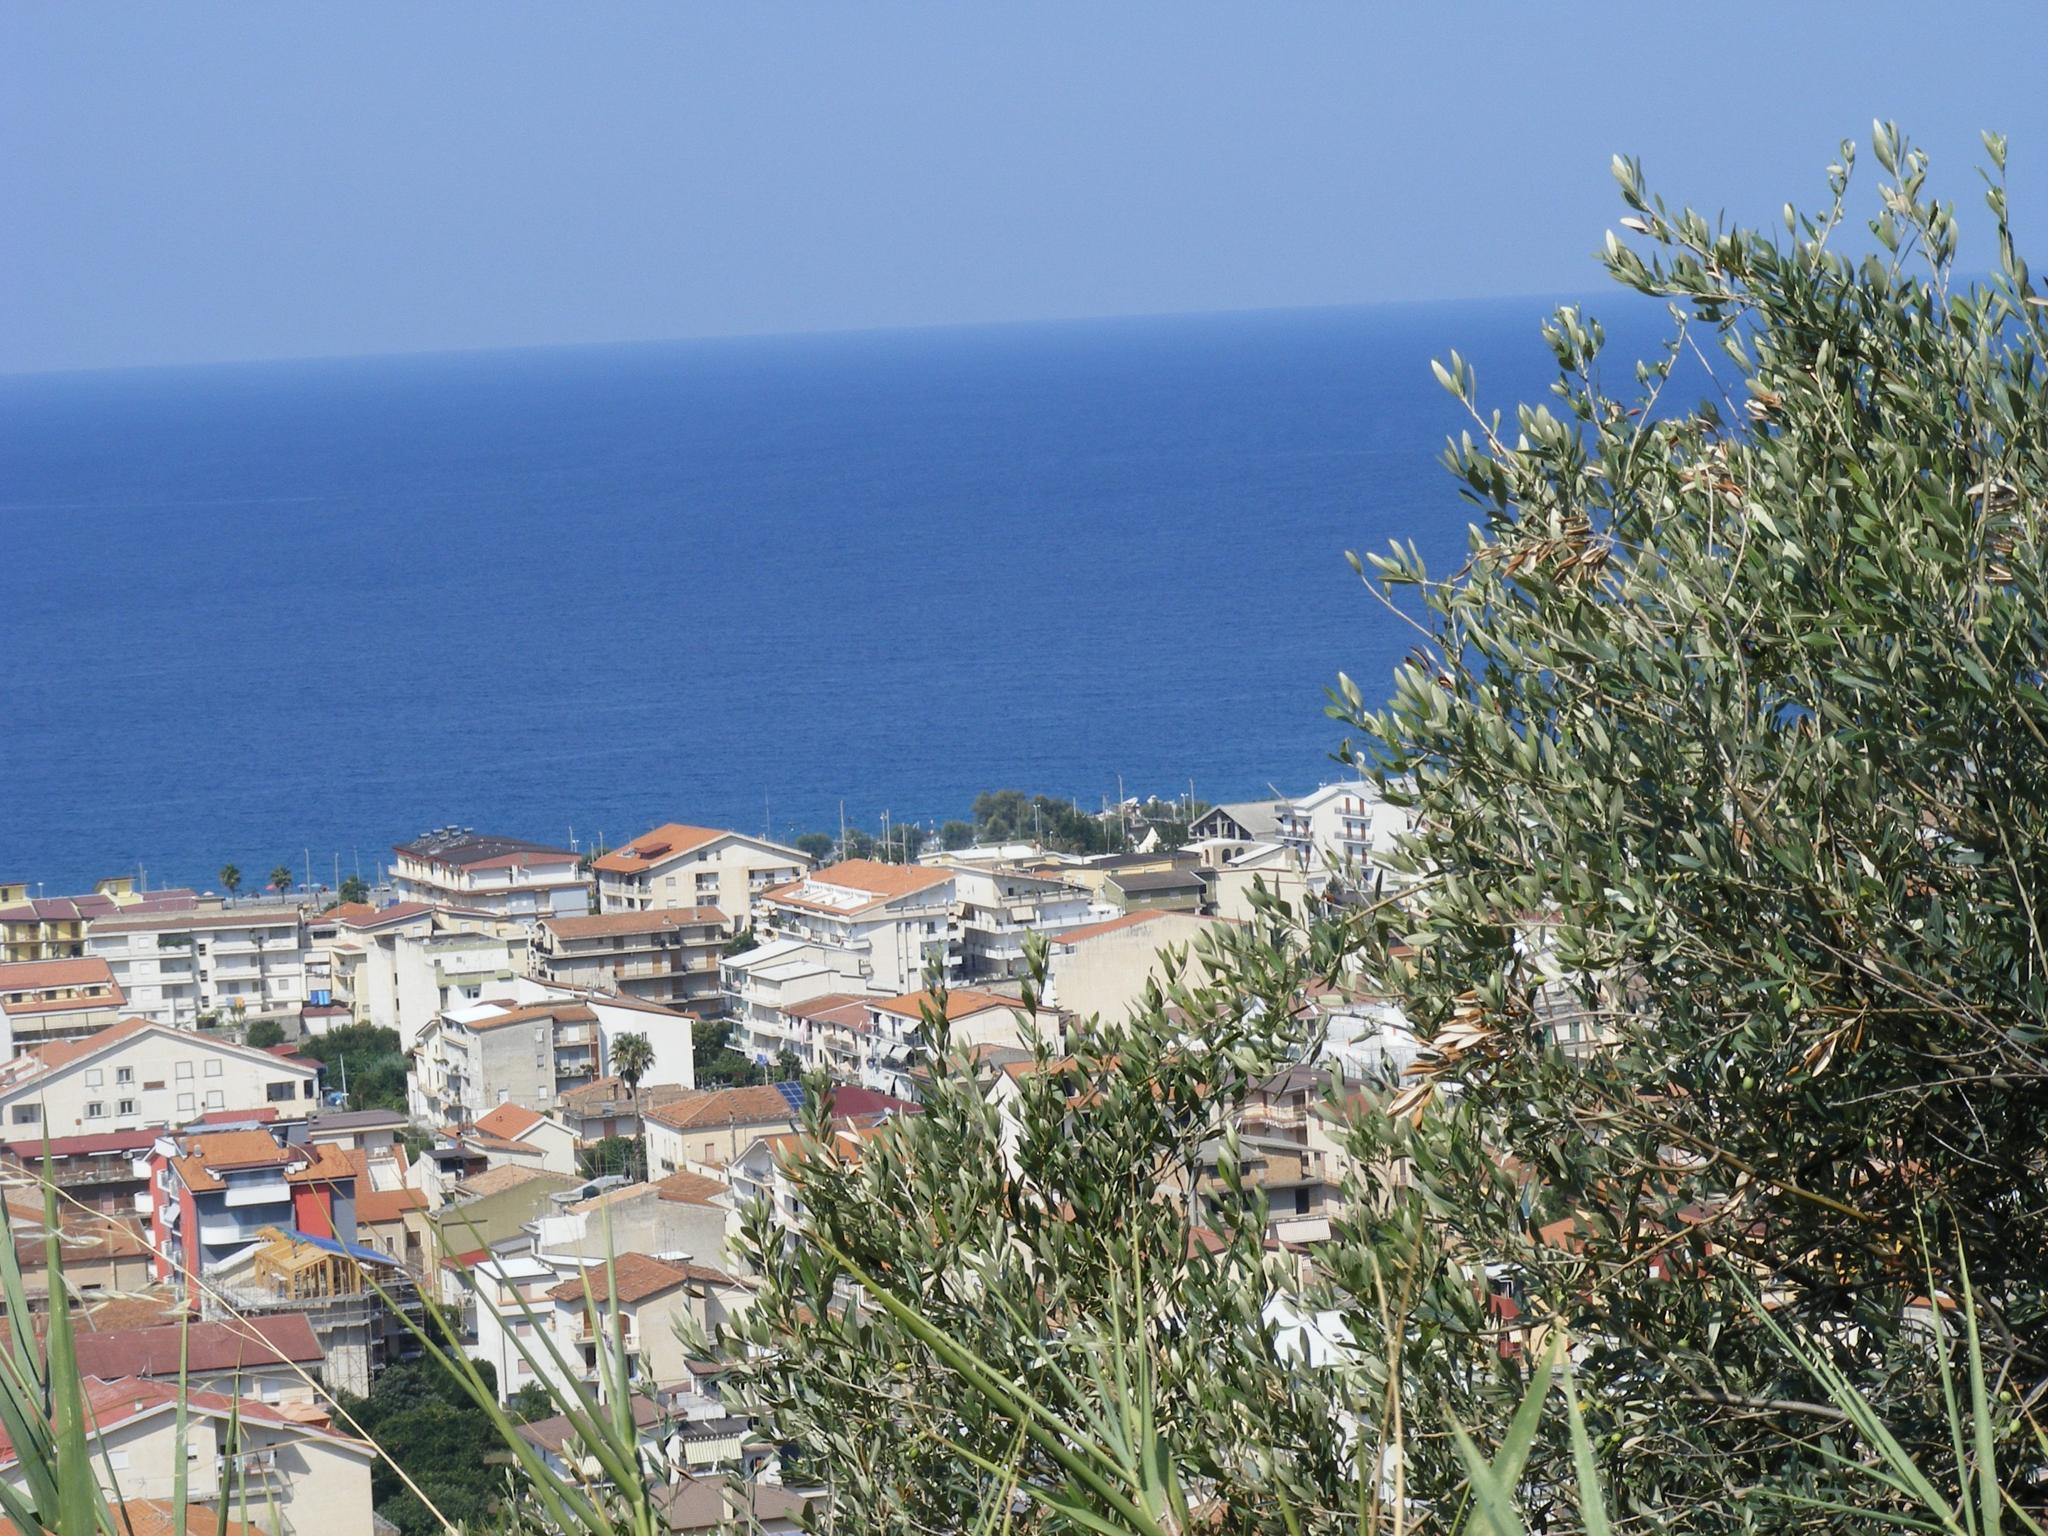 Calabria Sud Italy by swernthaler